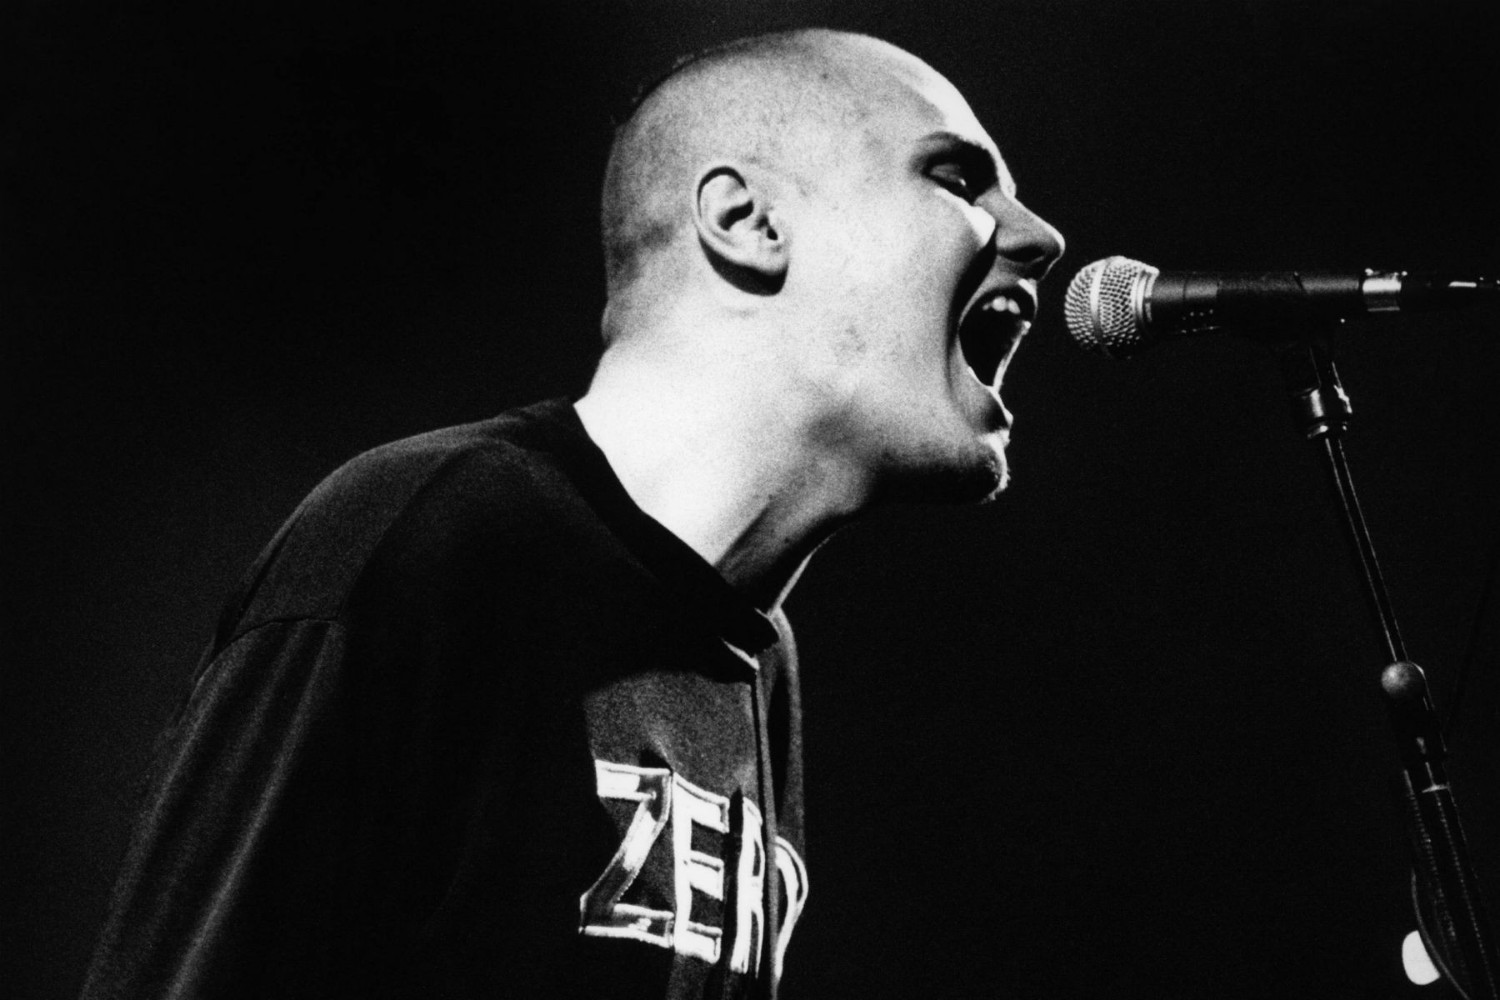 The Smashing Pumpkins Astral Planes - A Stitch In Time